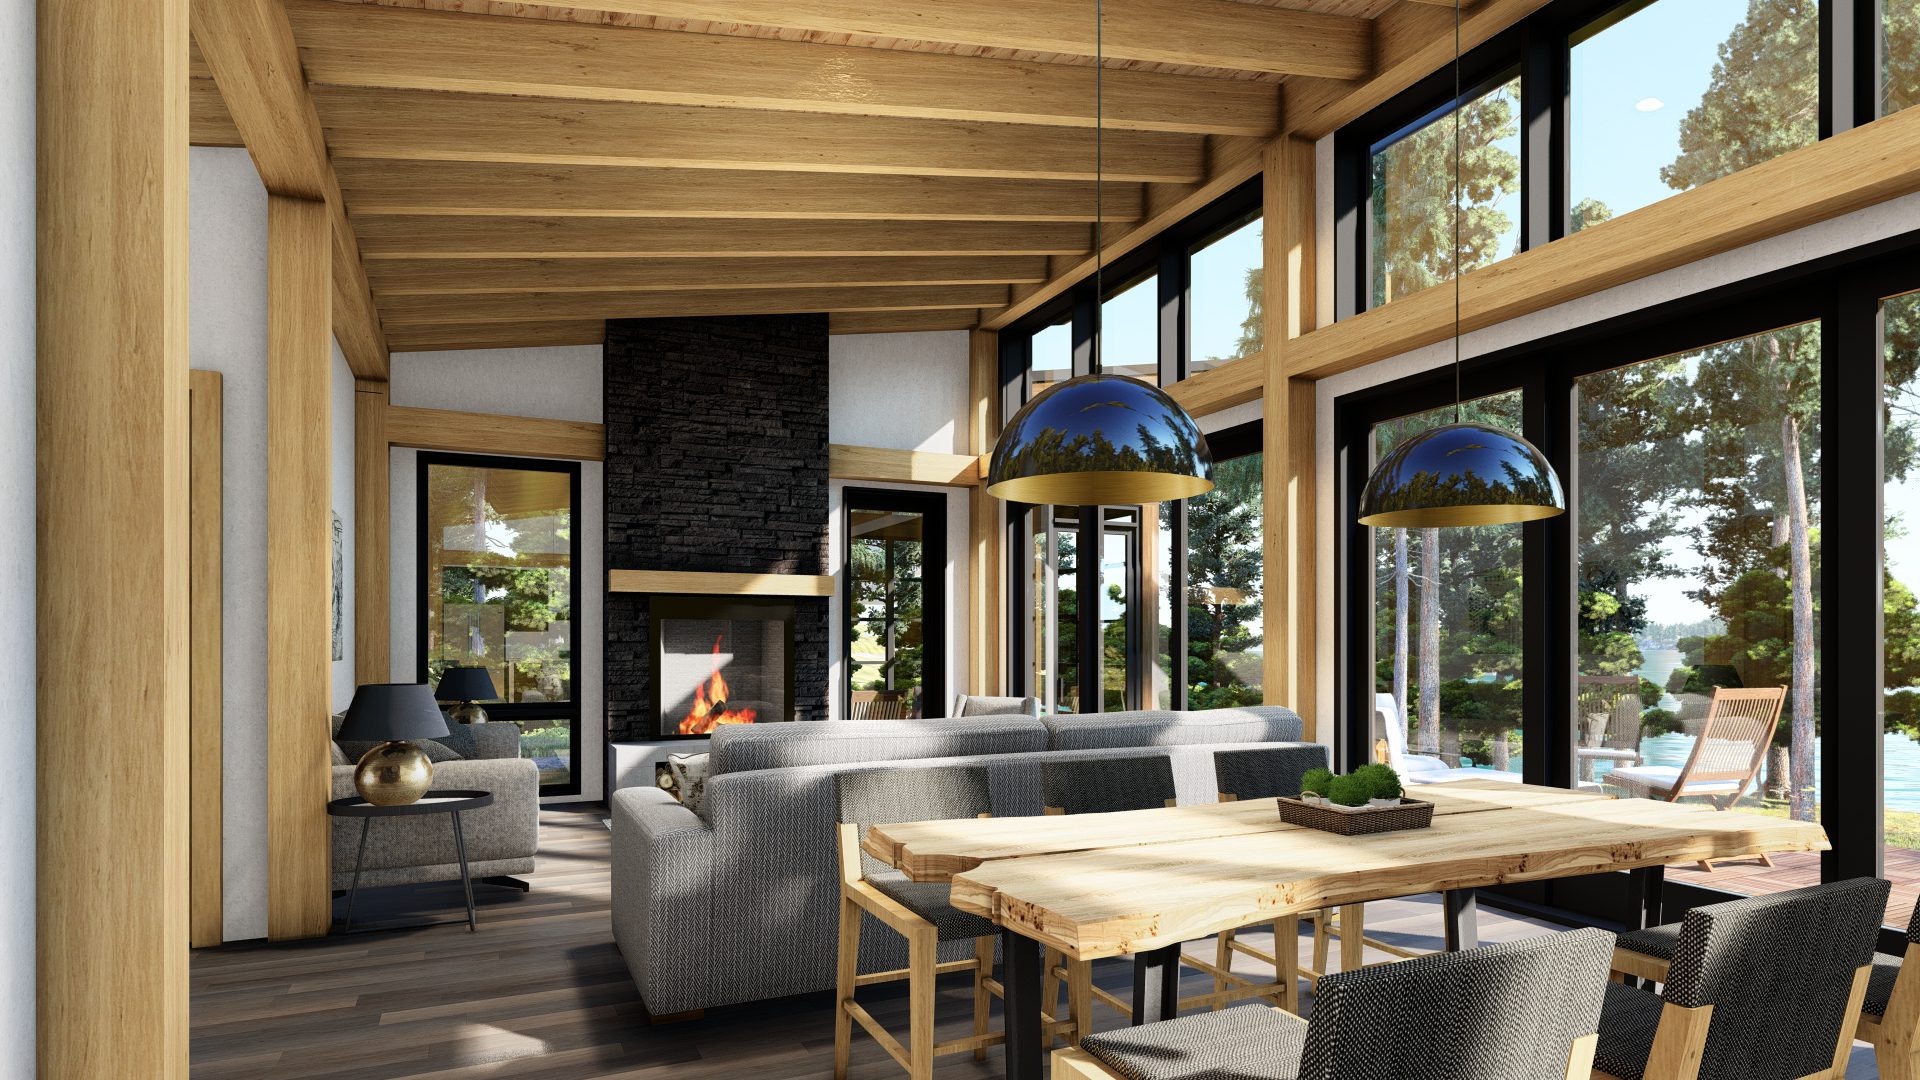 Normerica Timber Frames, House Plan, The Bayfield 3945, Interior, Dining Room, Living Room